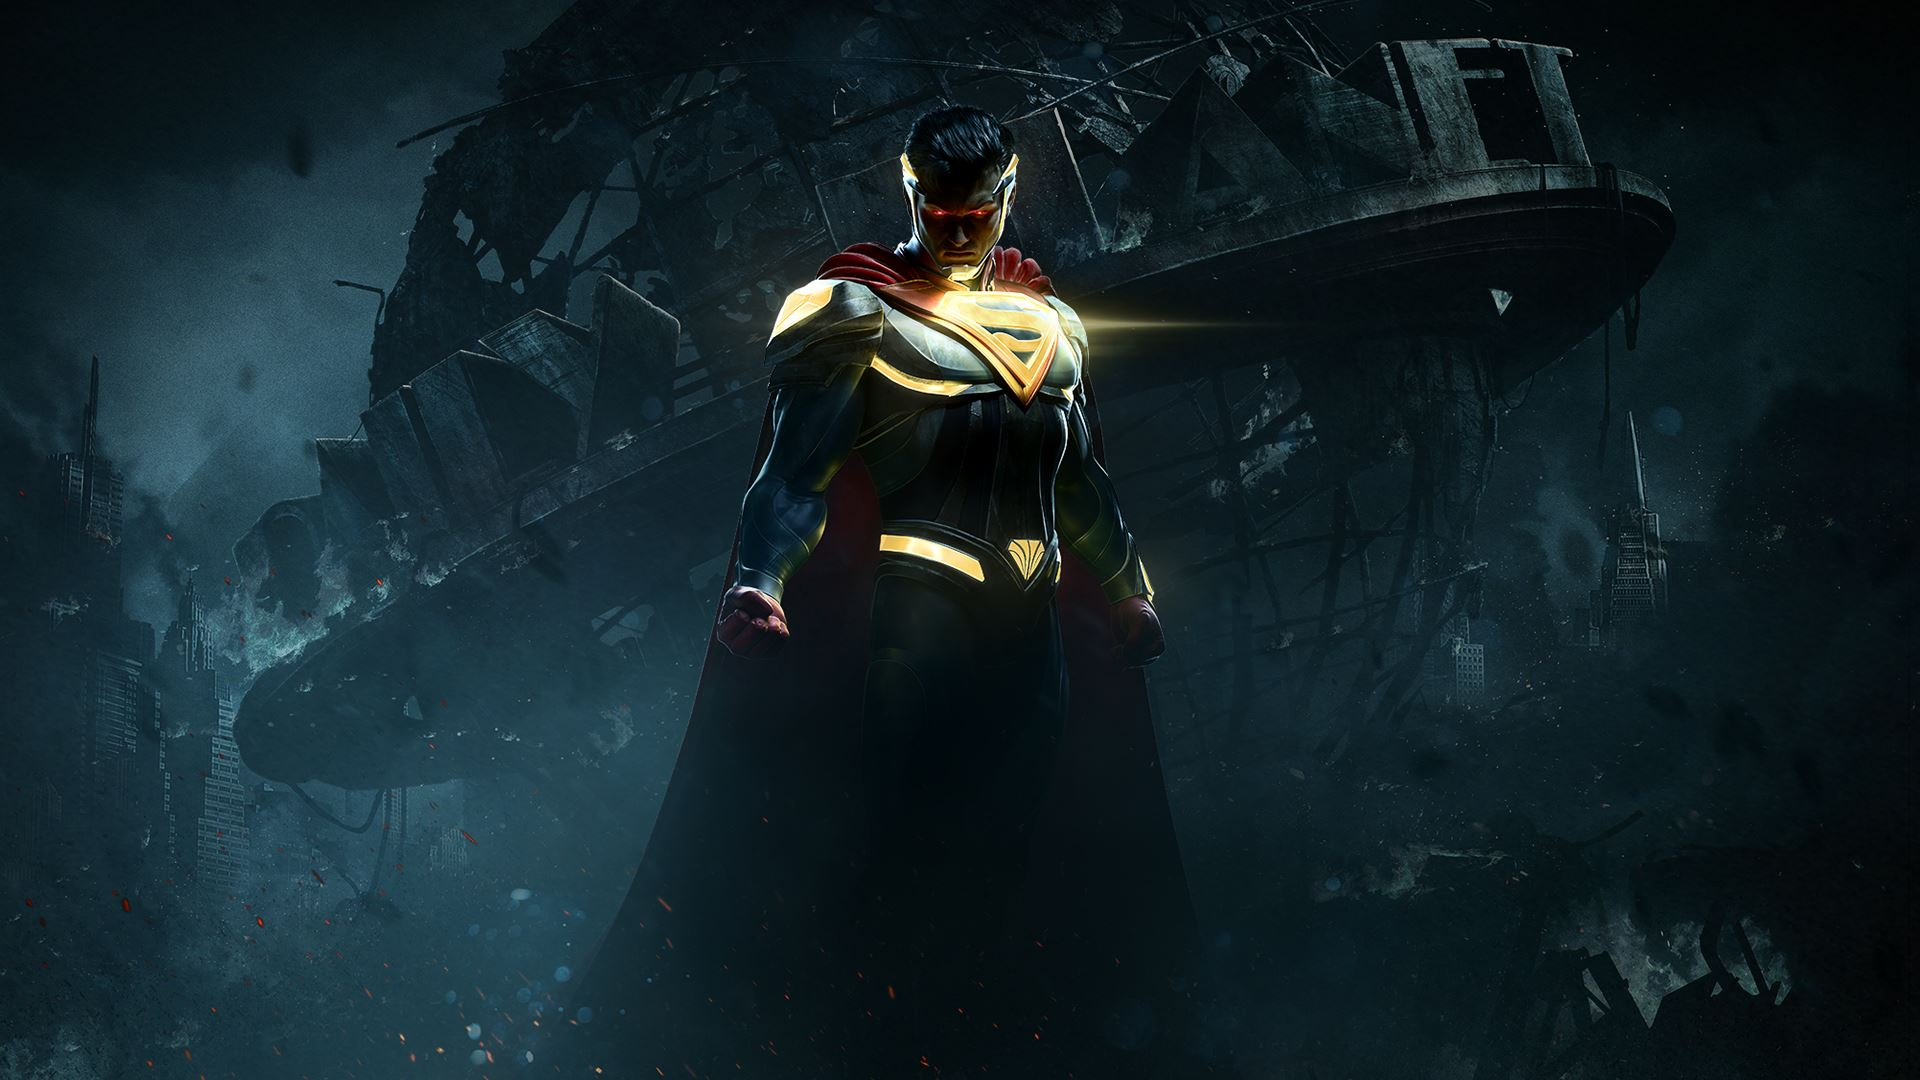 Image injustice 2 superman dailyplanet wallpaperg villains injustice 2 superman dailyplanet wallpaperg voltagebd Image collections